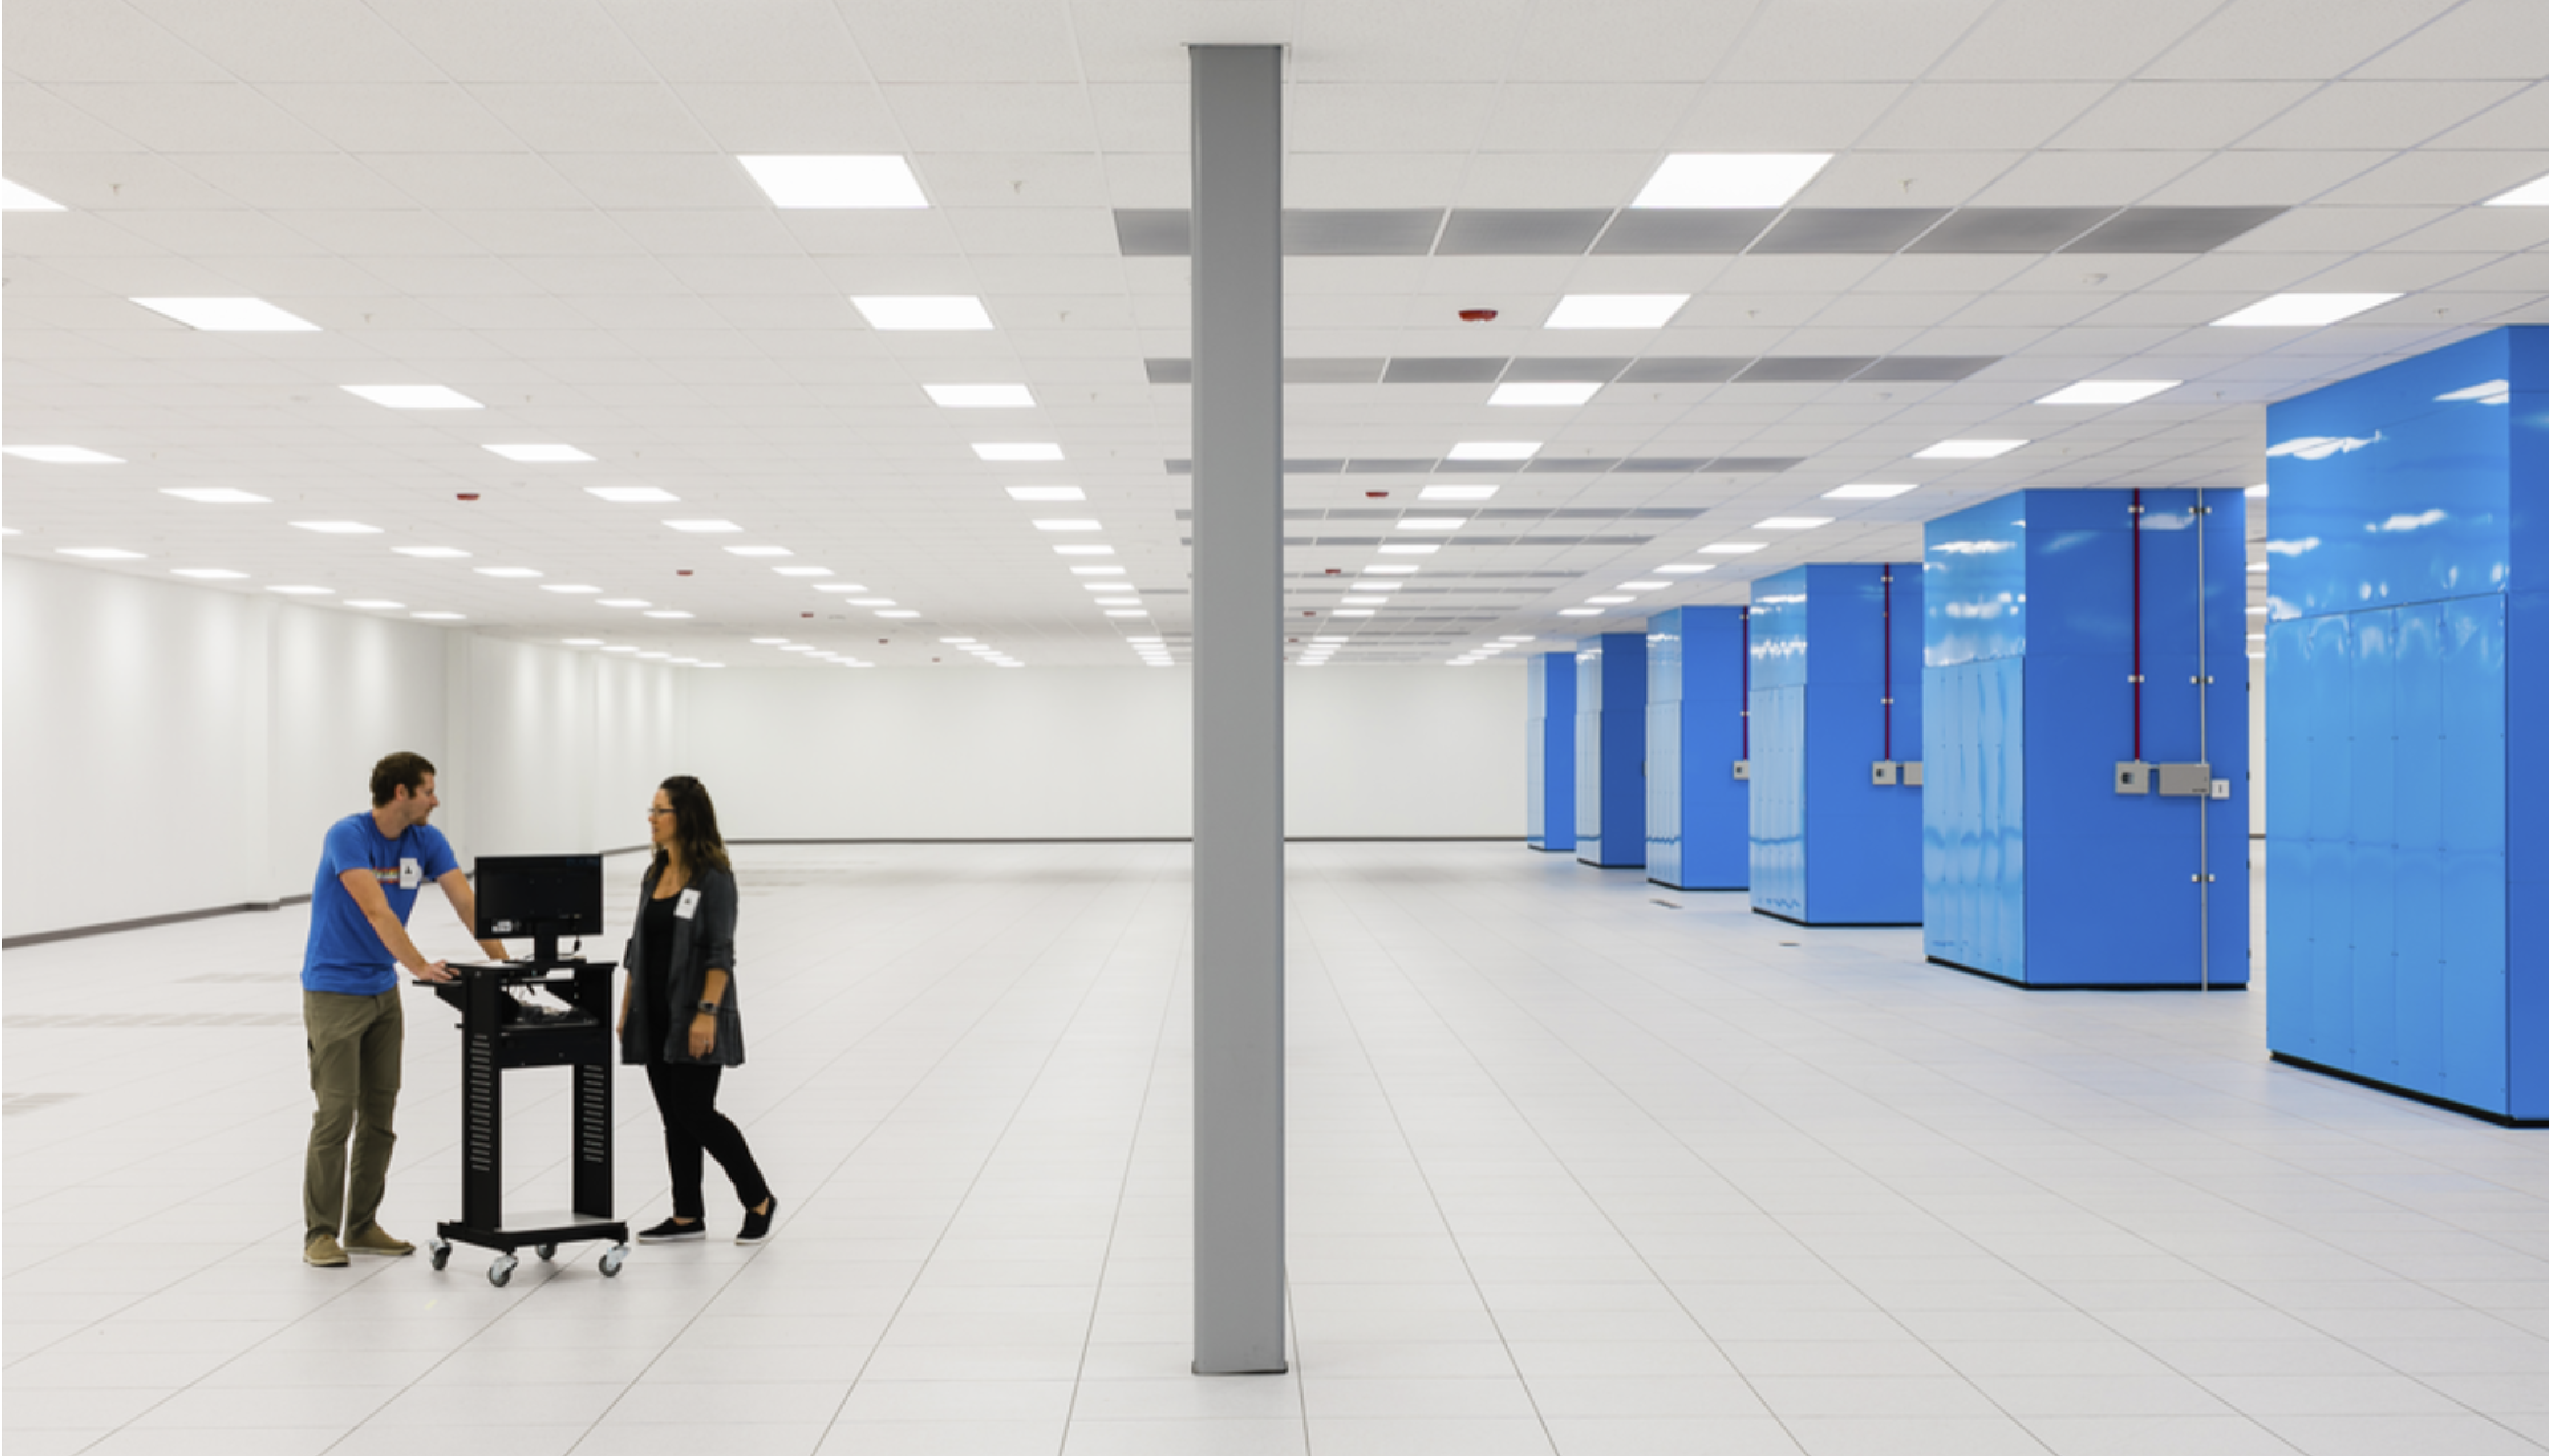 Two people stand in a data center room.